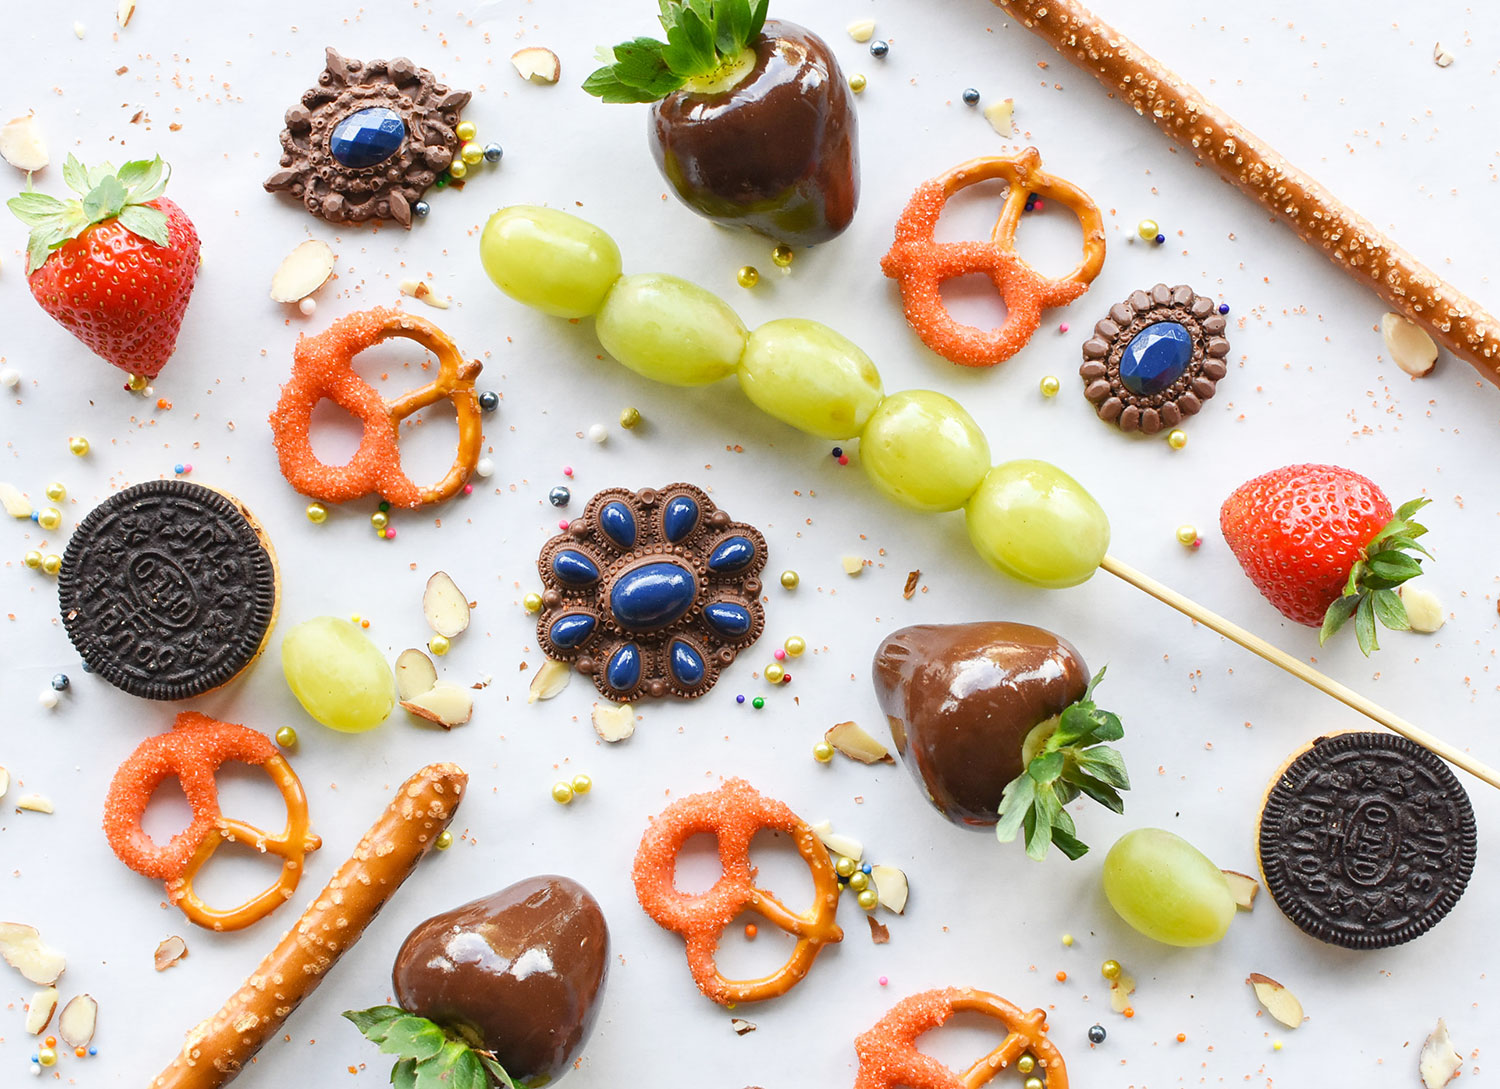 moore-twisted-berries-dipped-strawberries-plano-magazine-2